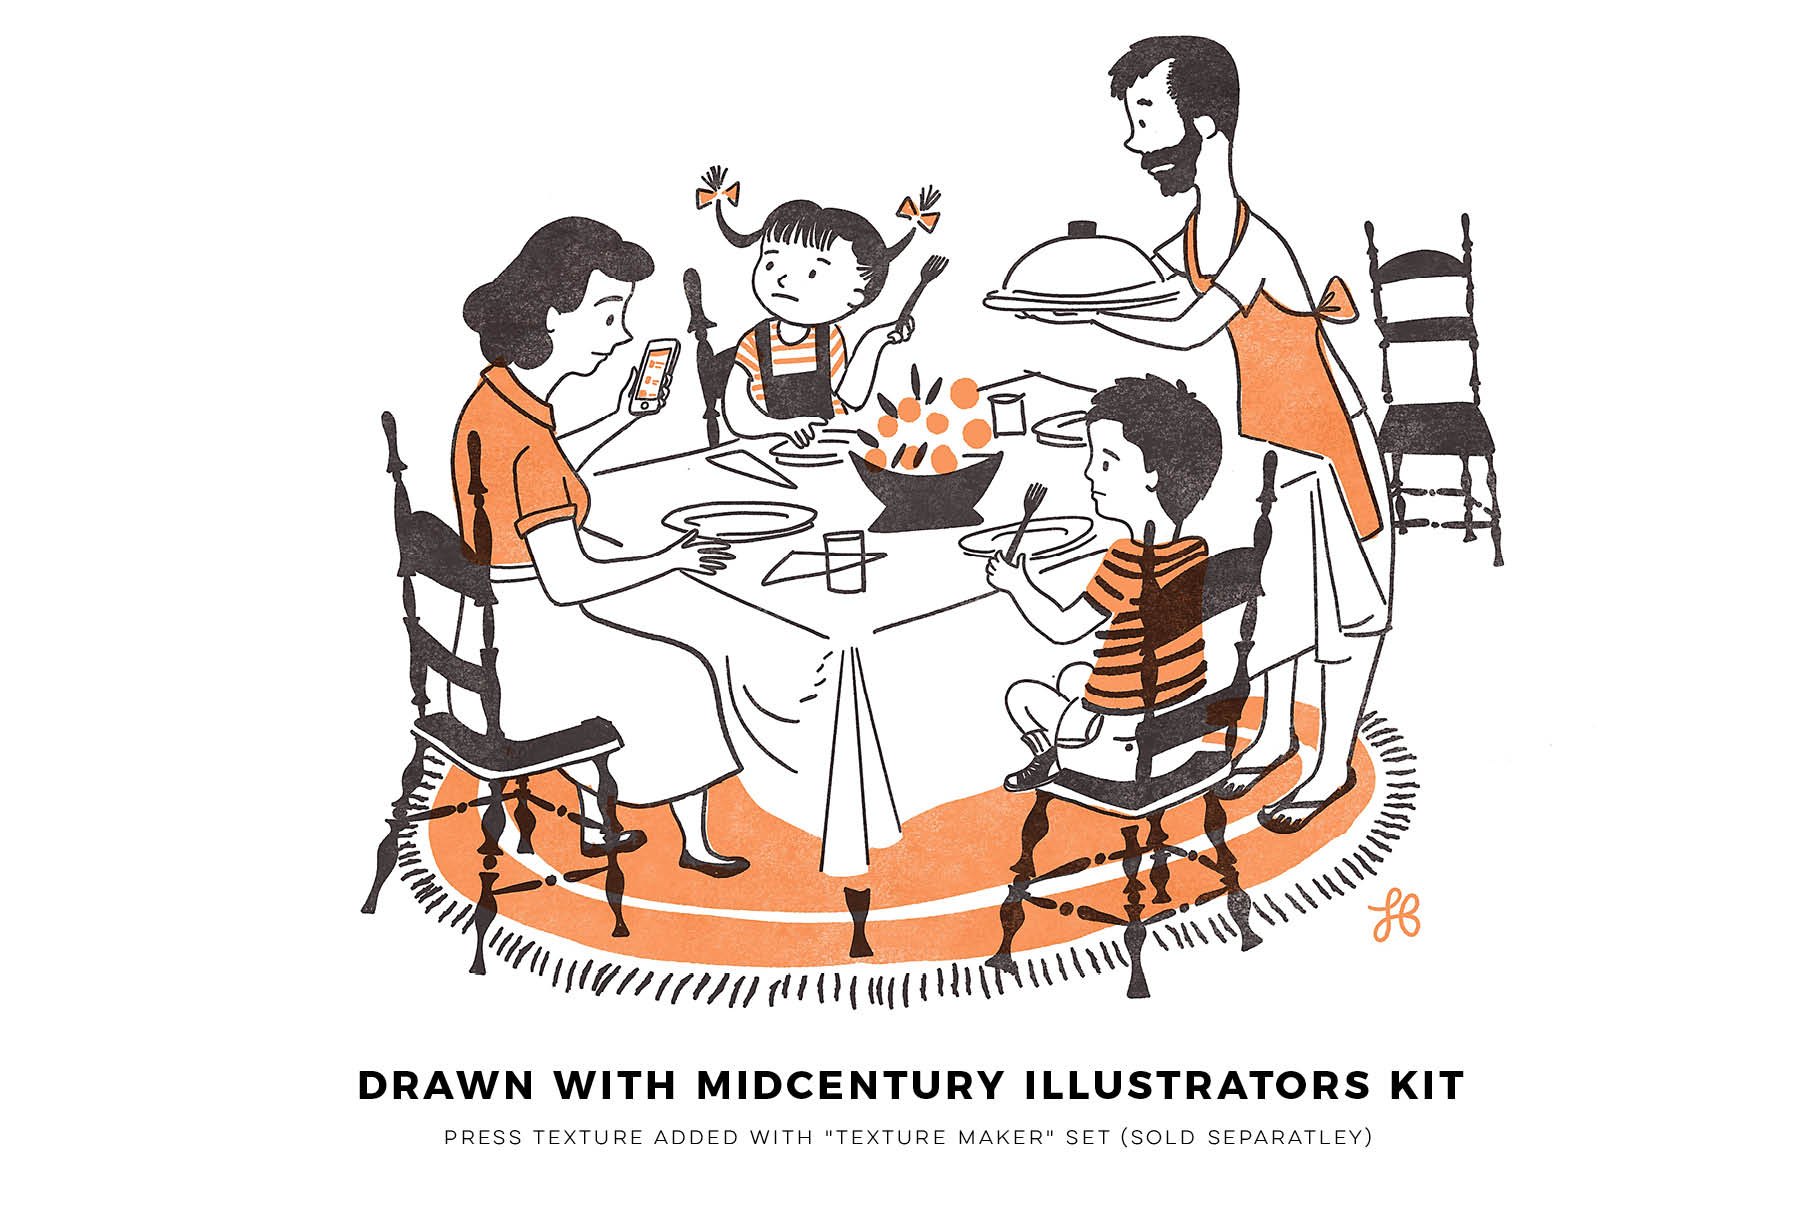 Midcentury Illustrator's Kit